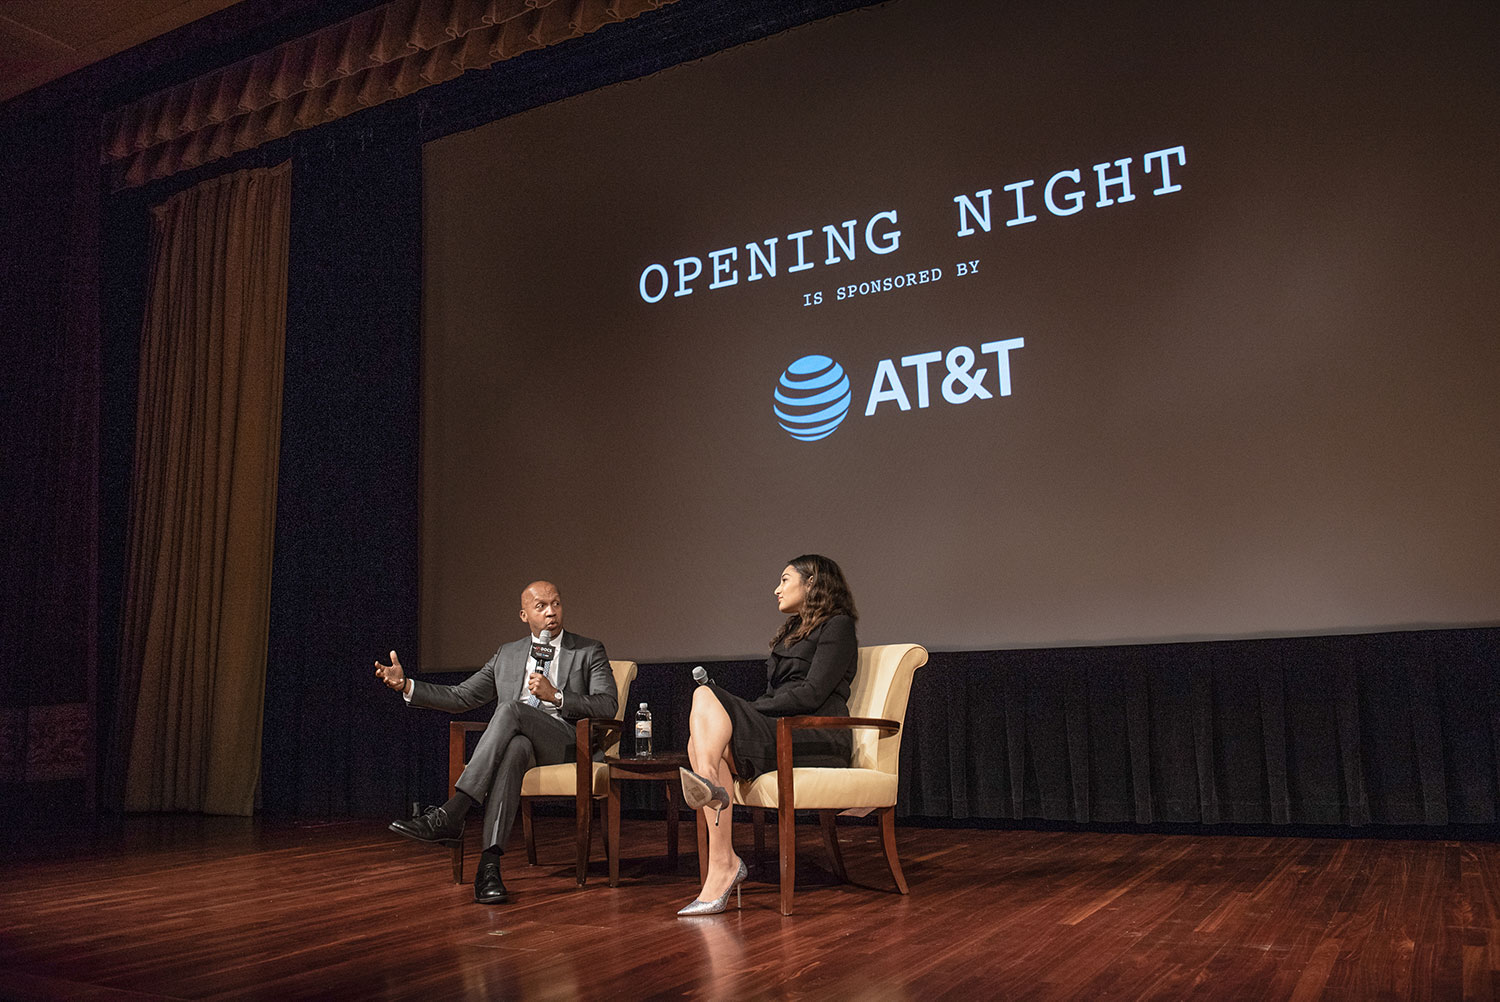 Bryan Stevenson, right, subject of 'True Justice,' in a post-screening conversation with NBC's Morgan Radford. Photo: Gediyon Kifle